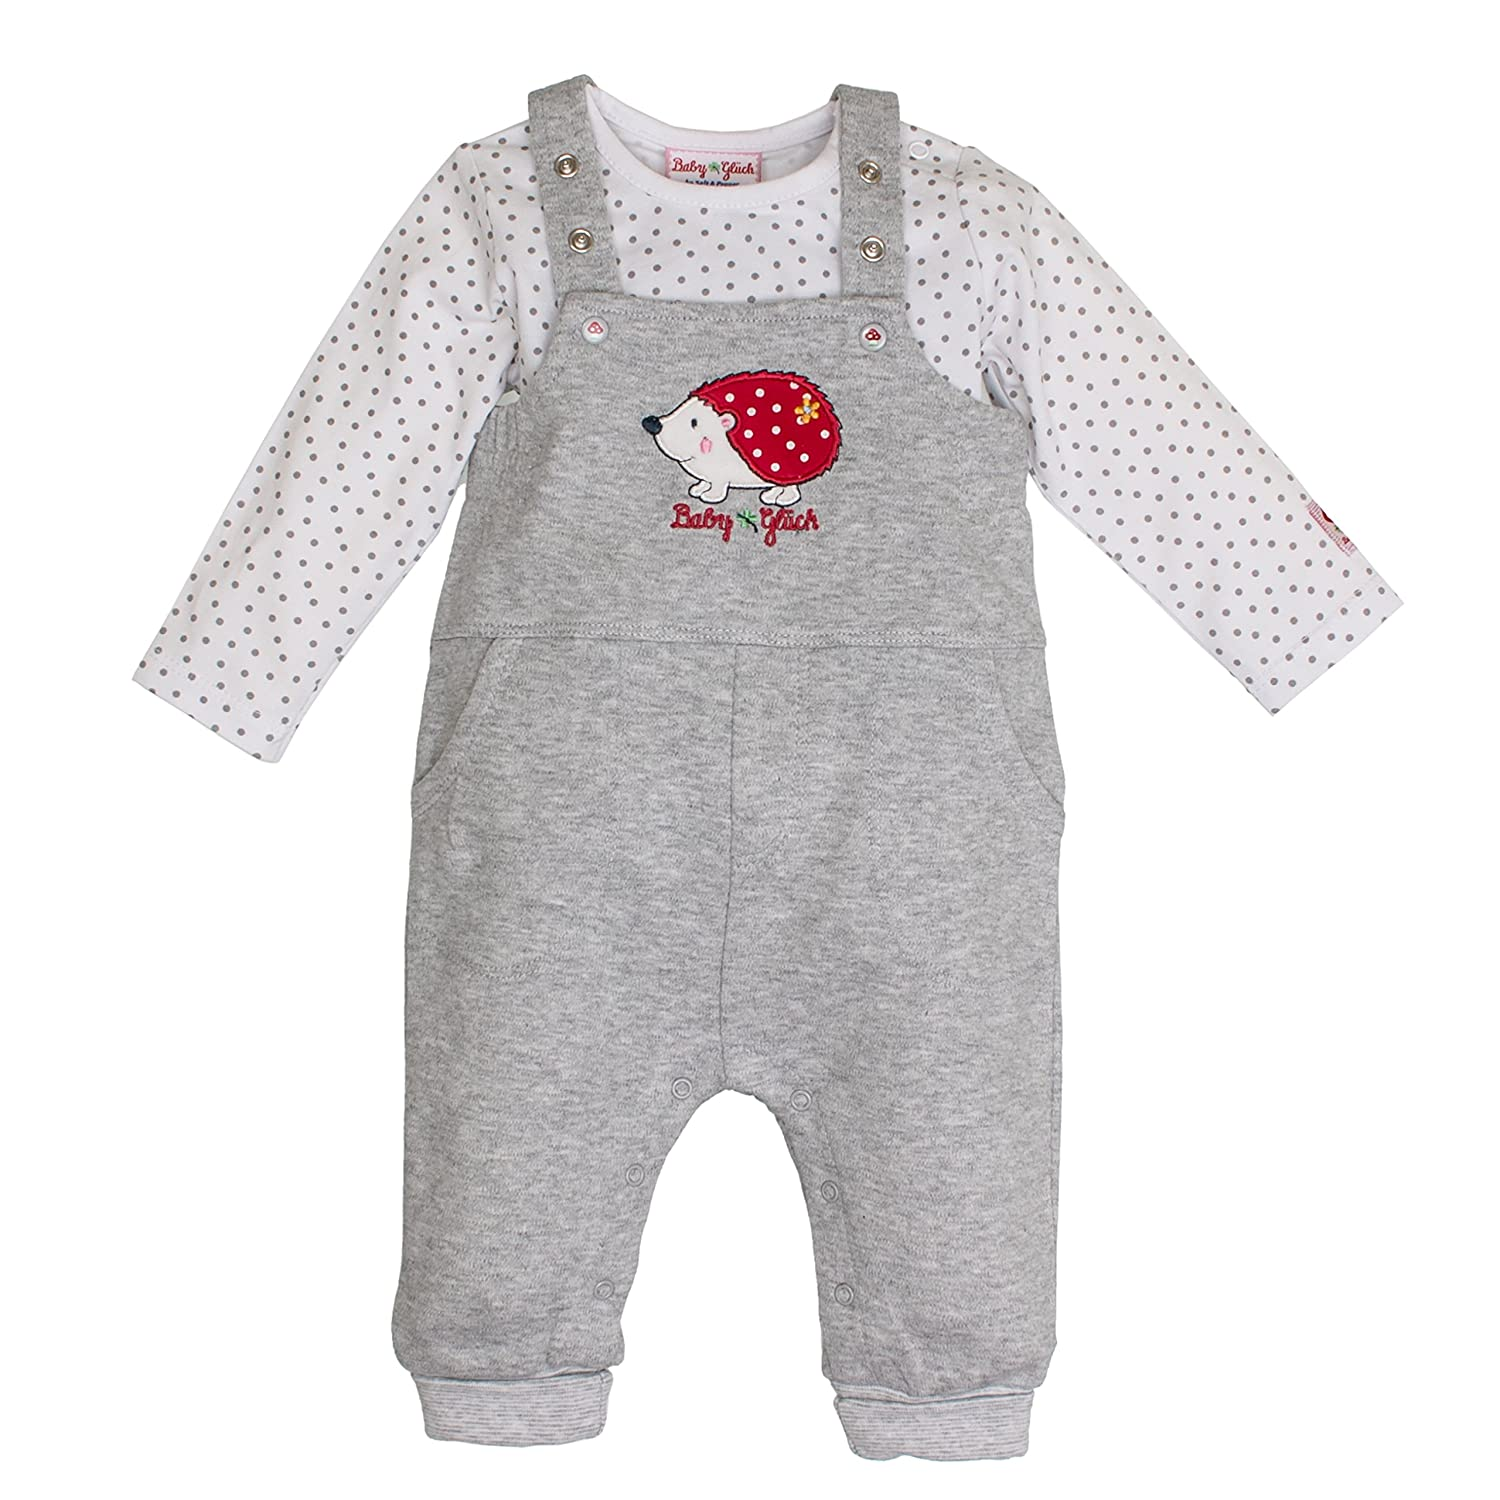 SALT AND PEPPER Baby-M/ädchen Bg Playsuit Allover K/äfer Strampler